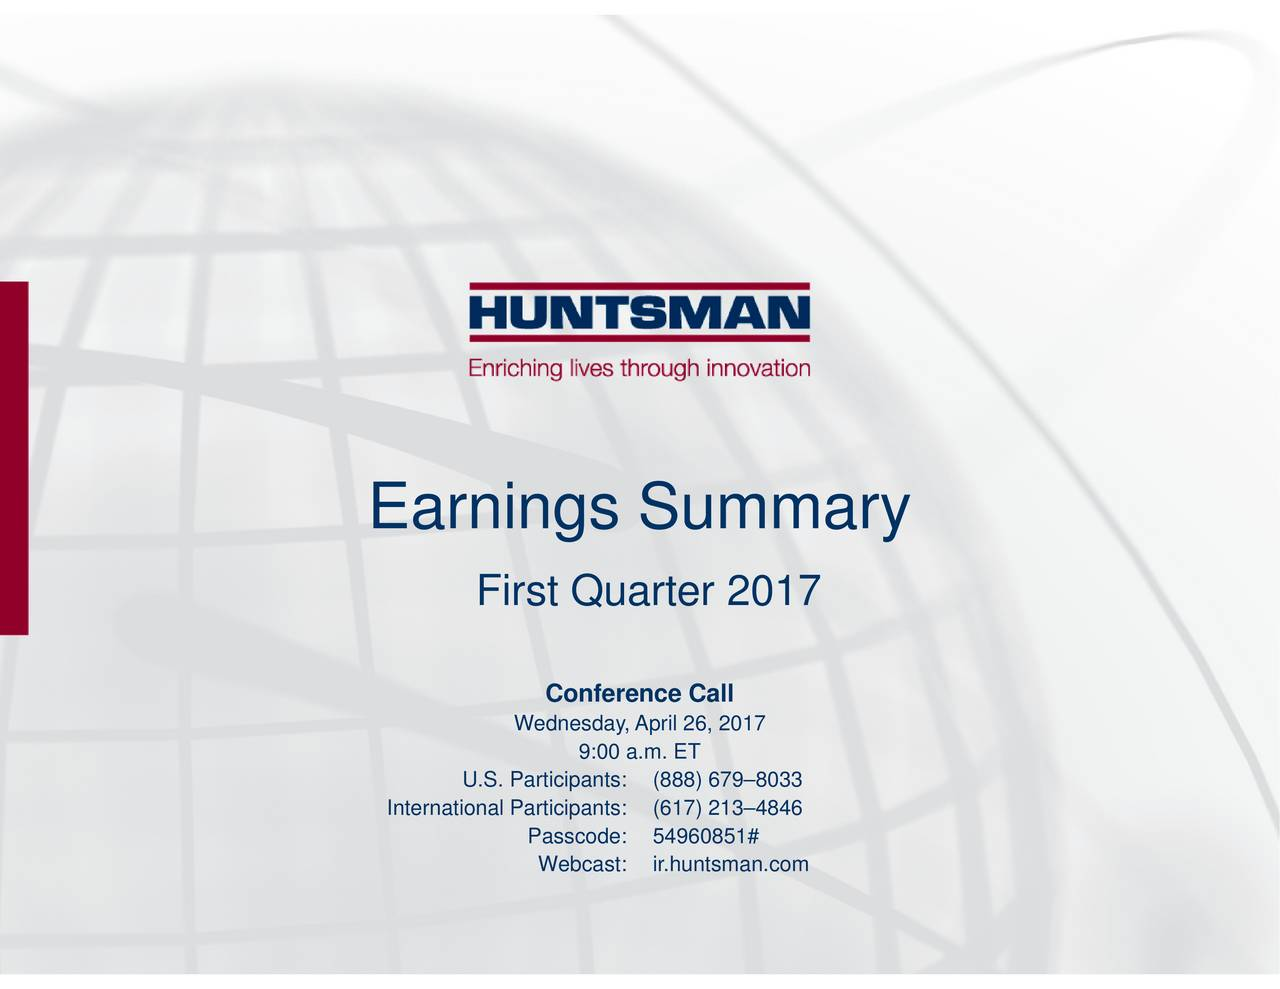 Conference CaWebcast: ir.huntsman.com Wednesday, April 26, 201751# First Quarter 2U.S. Participan(888) 6798033 International Partici(617) 2134846 Earnings Summary